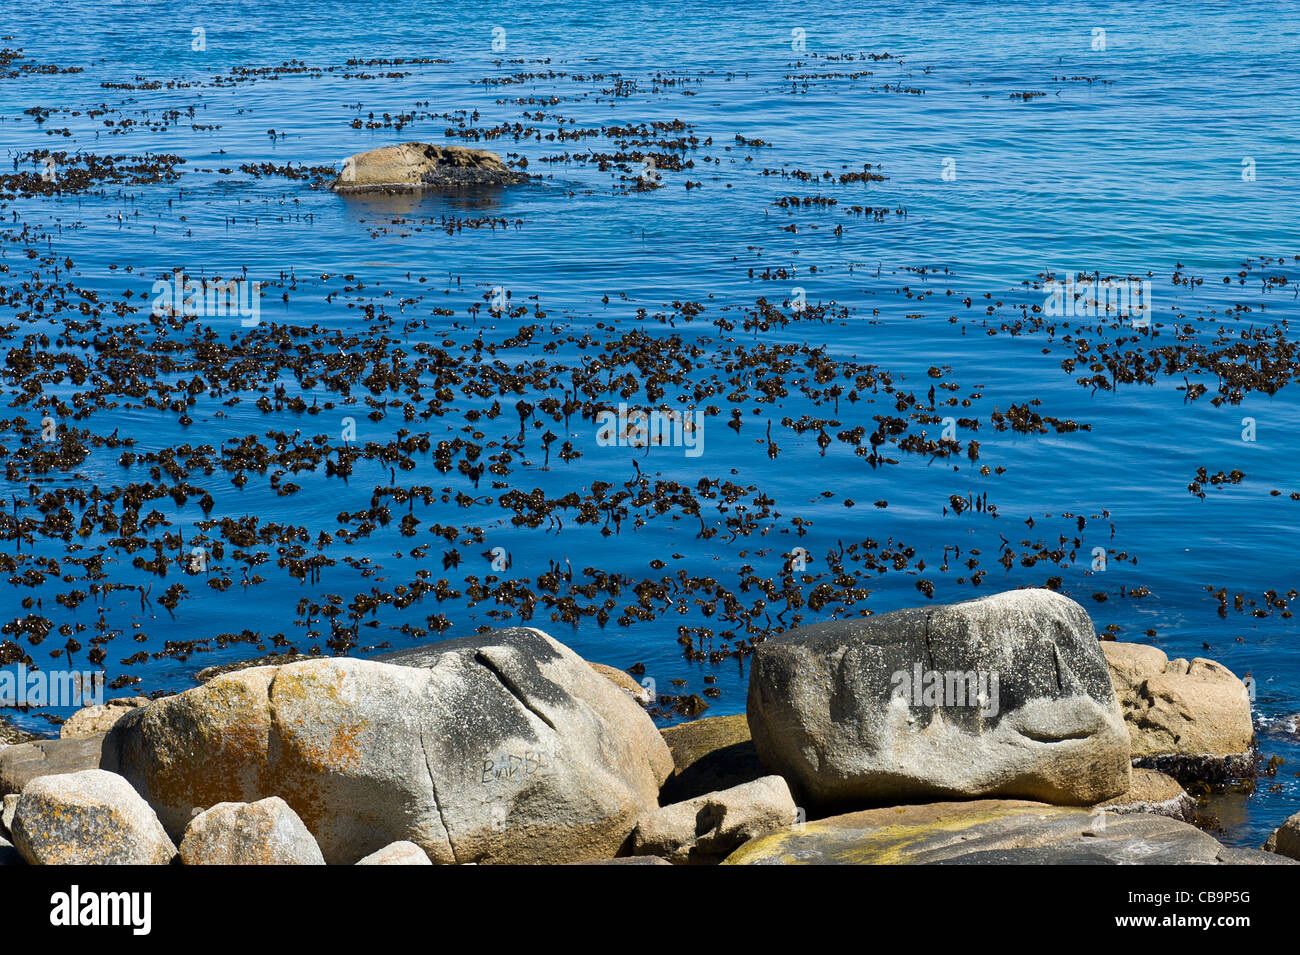 Kelp, a brown marine algae, Table Mountain National Park Marine Protected Area south of Cape Town South Africa - Stock Image